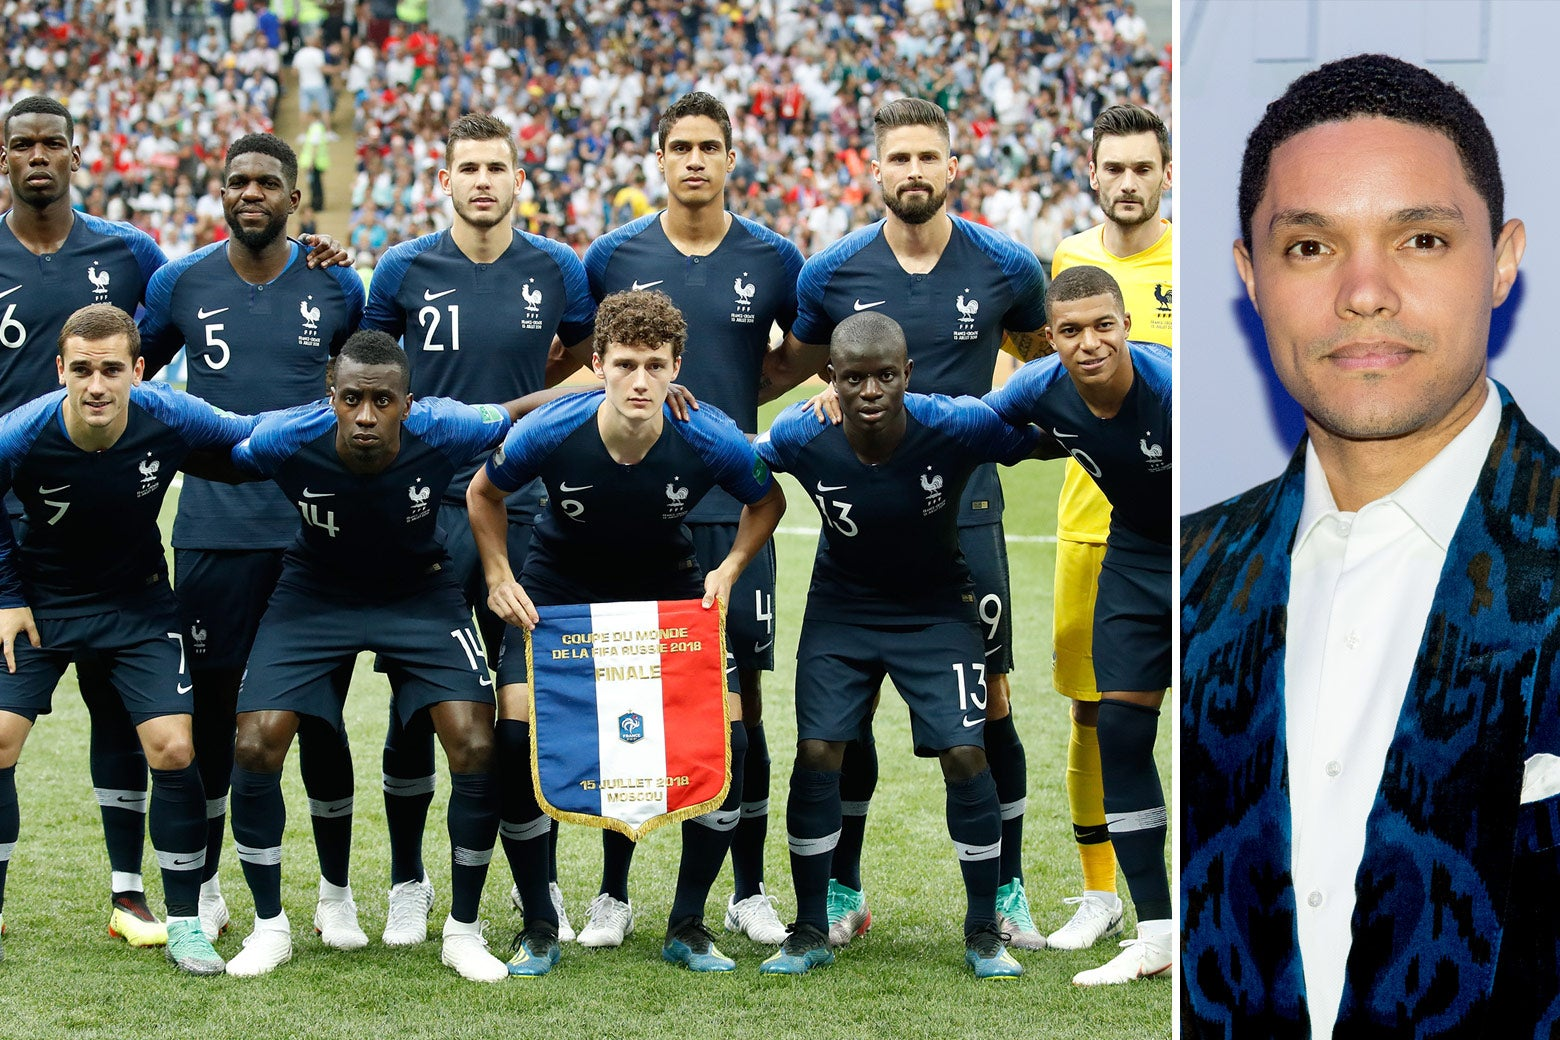 The French soccer team and Trevor Noah.